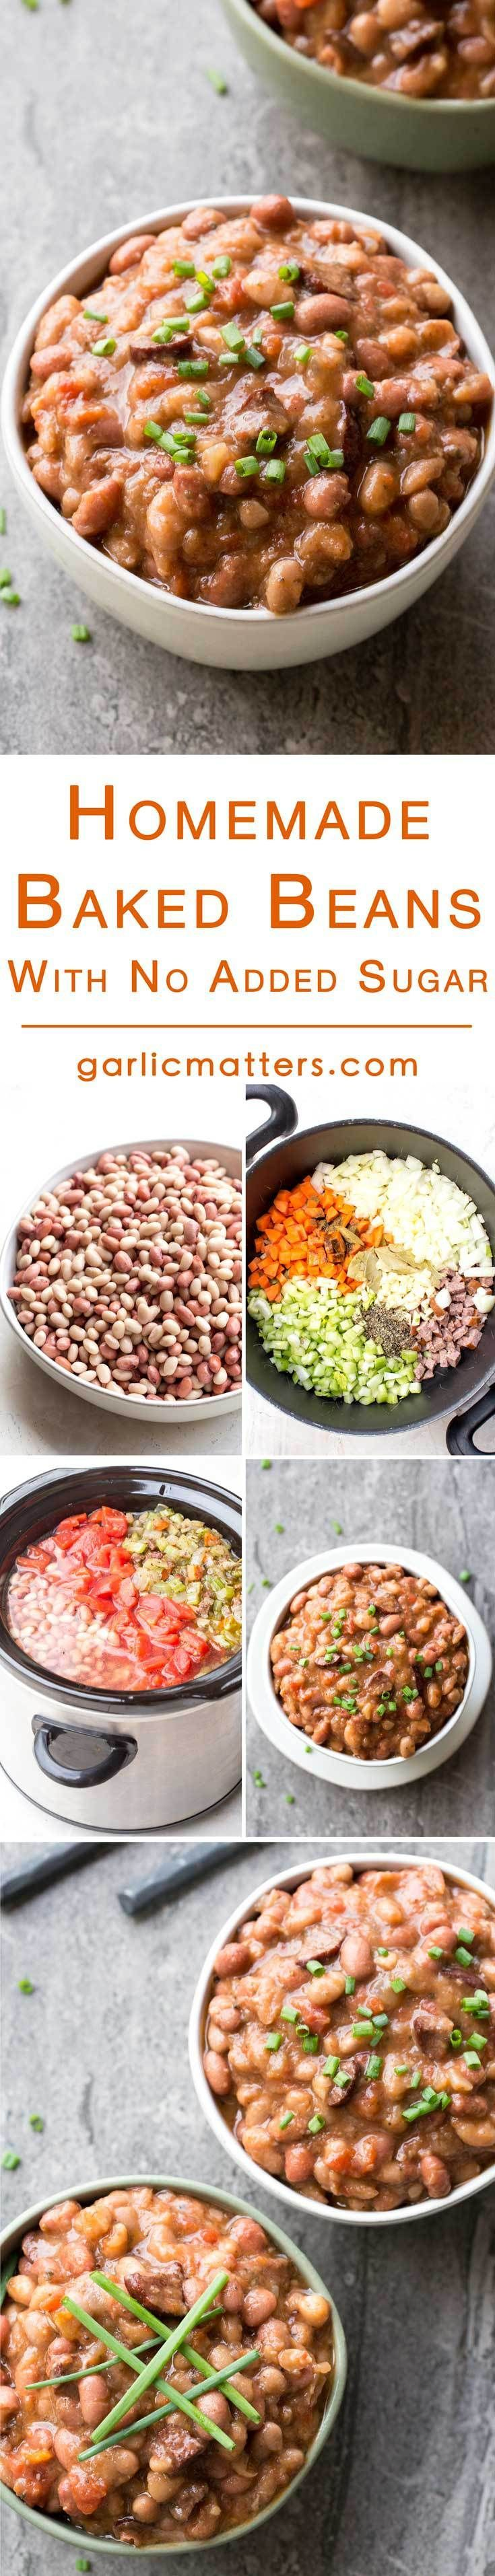 Homemade baked beans is a set and forget, hearty meal, which is such a blessing to come home to on a cold winter's evening. Although, made from scratch the total work on your part takes hardly 20 min! These slow cooker baked beans are 100% added sugar free - much healthier in comparison to beans from a can (even popular Heinz!). Meat is not a major part of this recipe, but a small addition of finely chopped smoked sausage or bacon helps to deepen and complement the flavour.